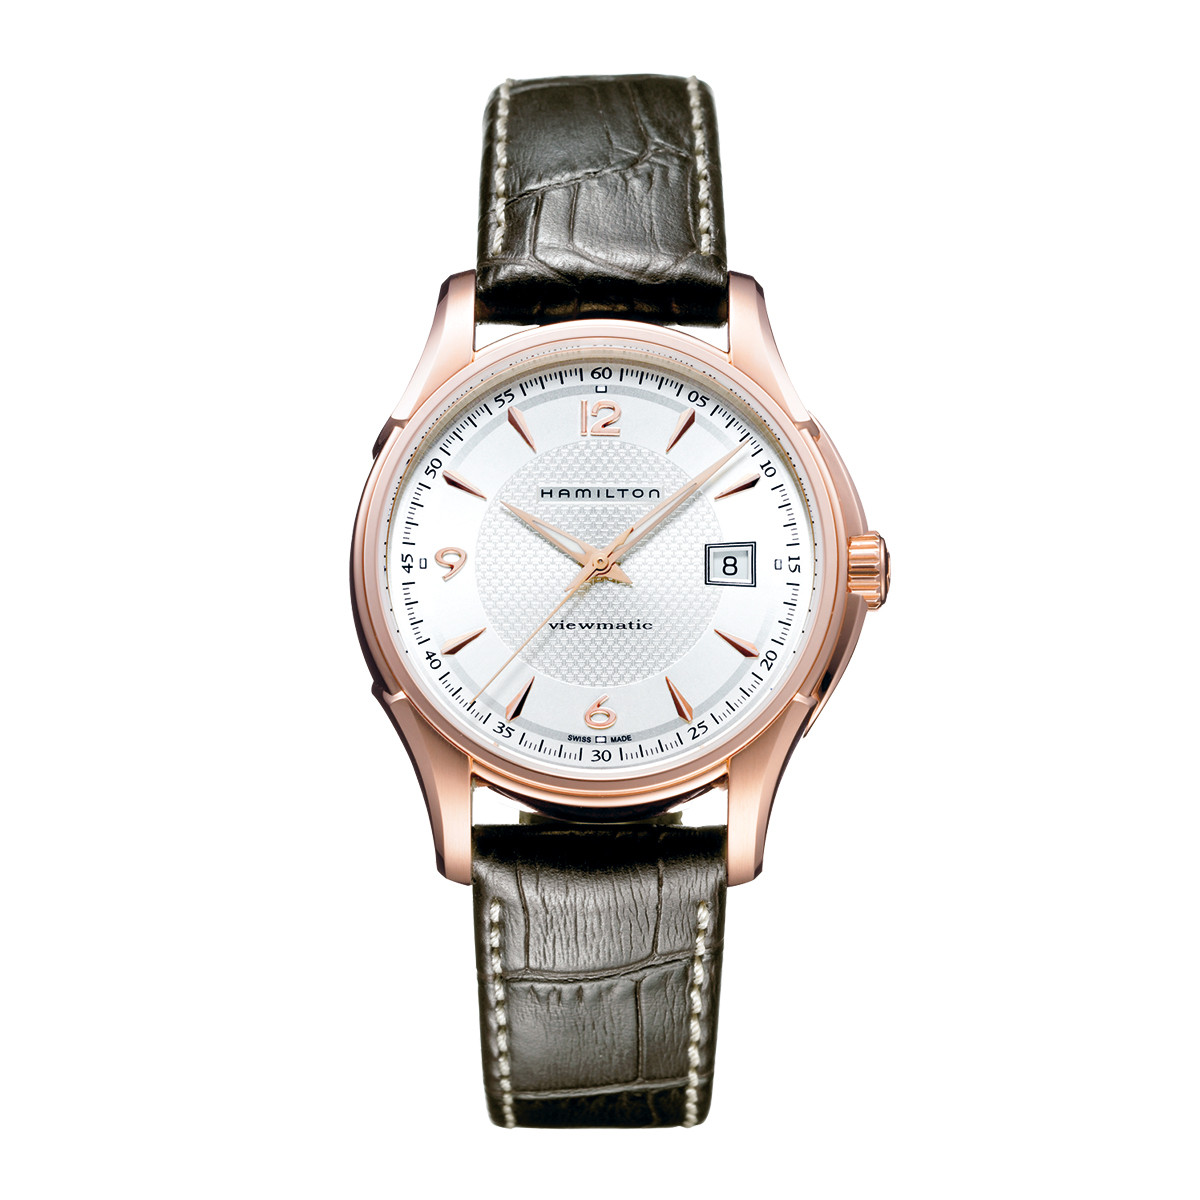 Pre-Owned Men's Hamilton Jazzmaster Viewmatic